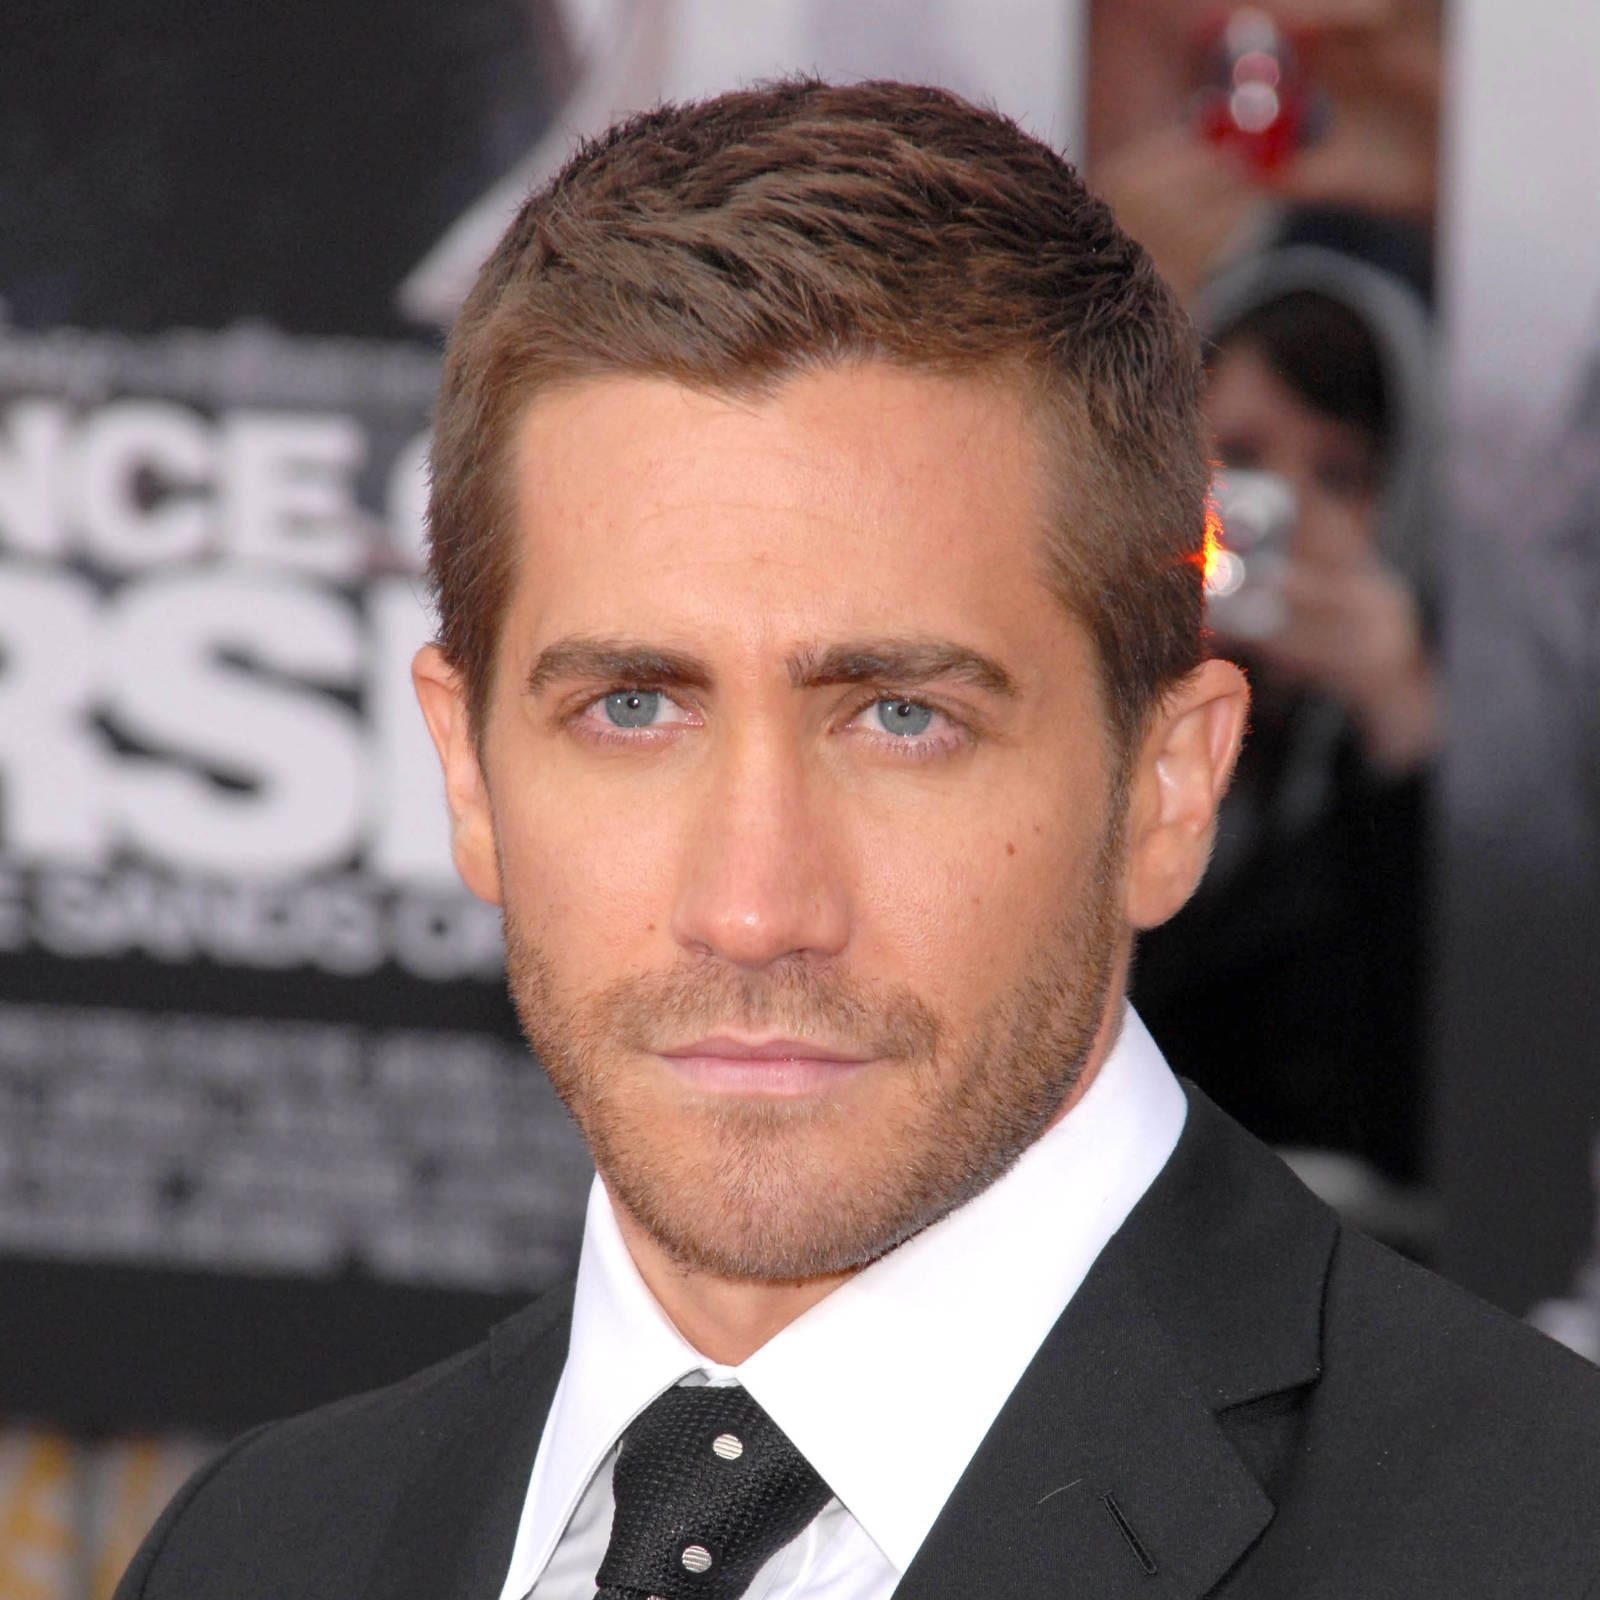 10 Best Men's Haircuts According to Face Shape in